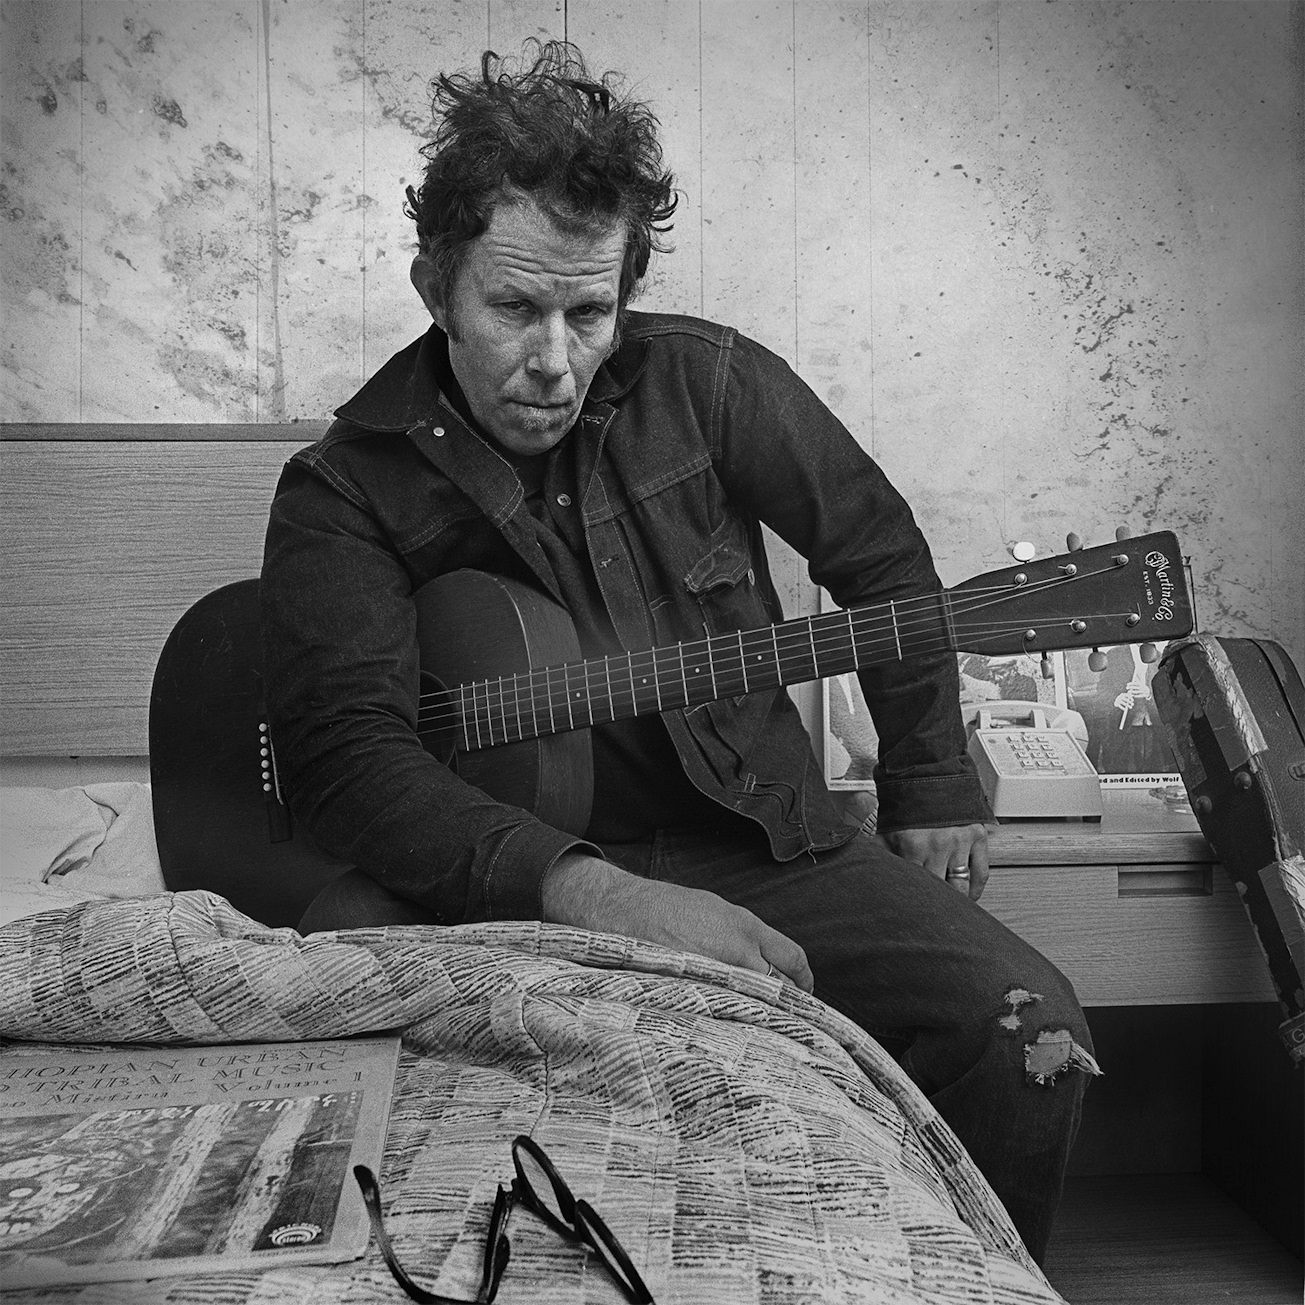 Tune Of The Day: Tom Waits - Earth Died Screaming